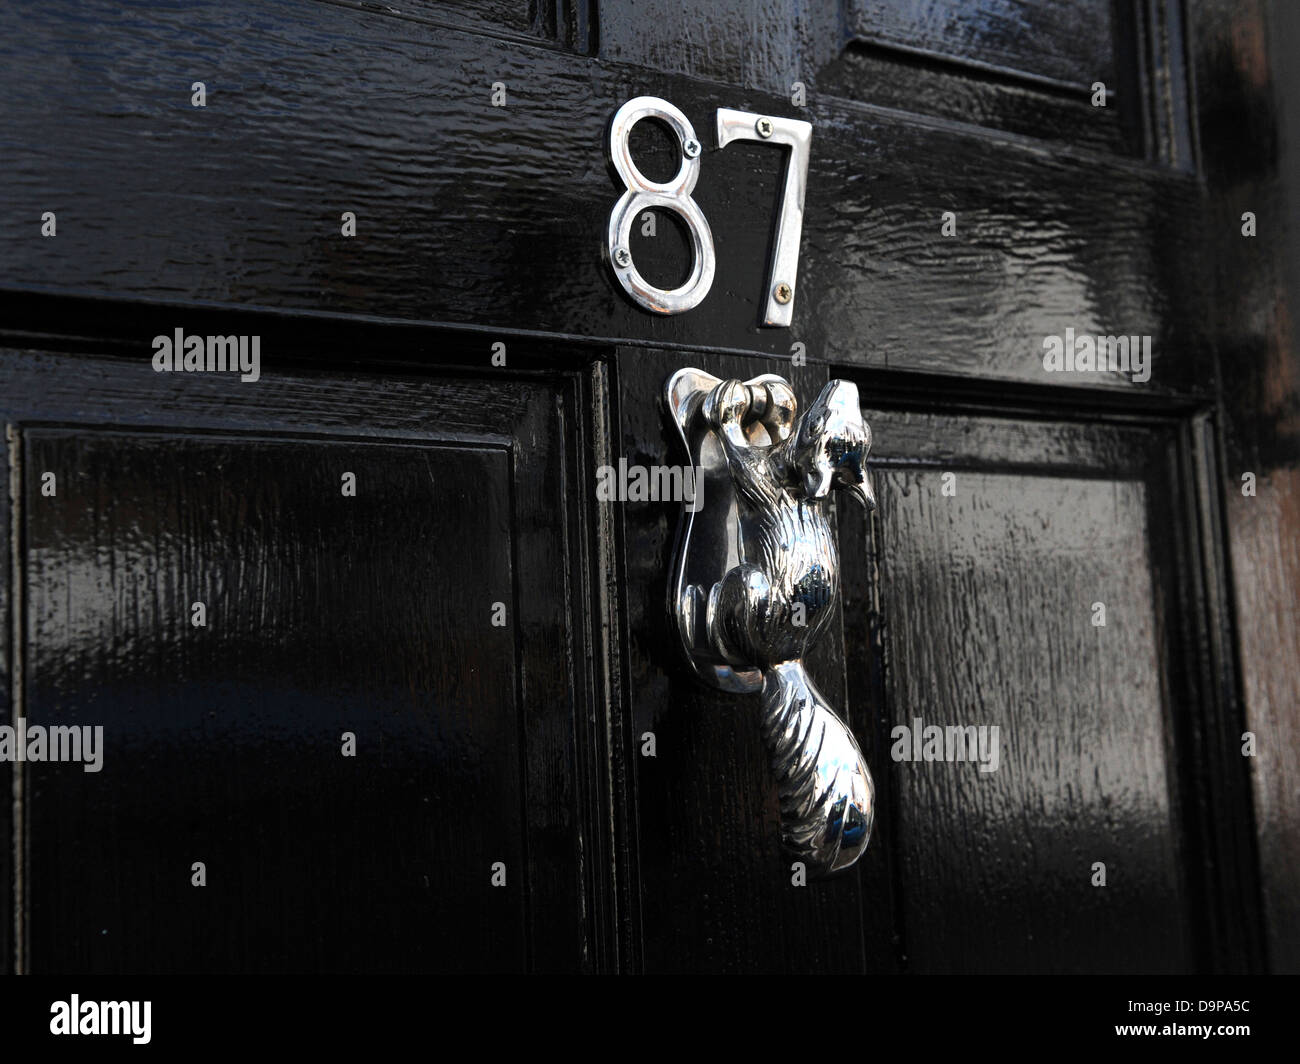 A black door with a chrome squirrel door knocker. & A black door with a chrome squirrel door knocker Stock Photo ...